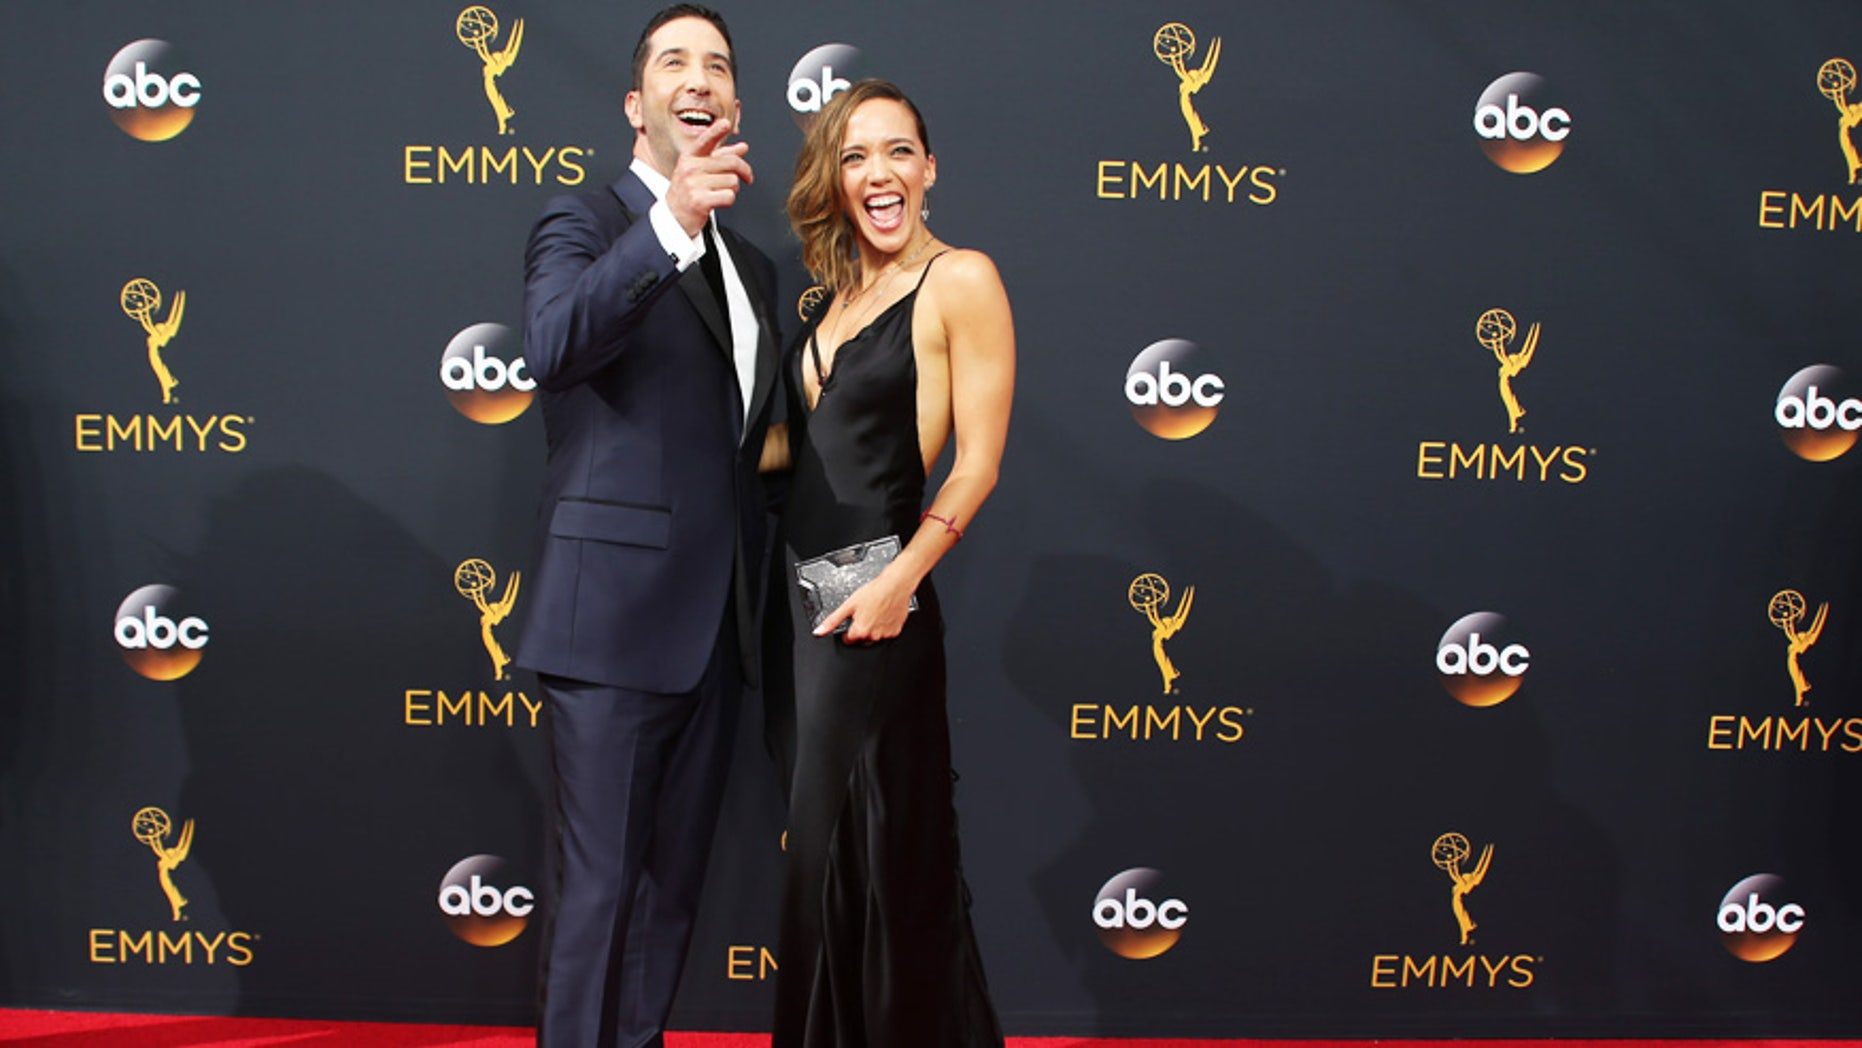 Actor David Schwimmer and his wife Zoe Buckman announced they were taking some time apart after nearly seven years of marriage.